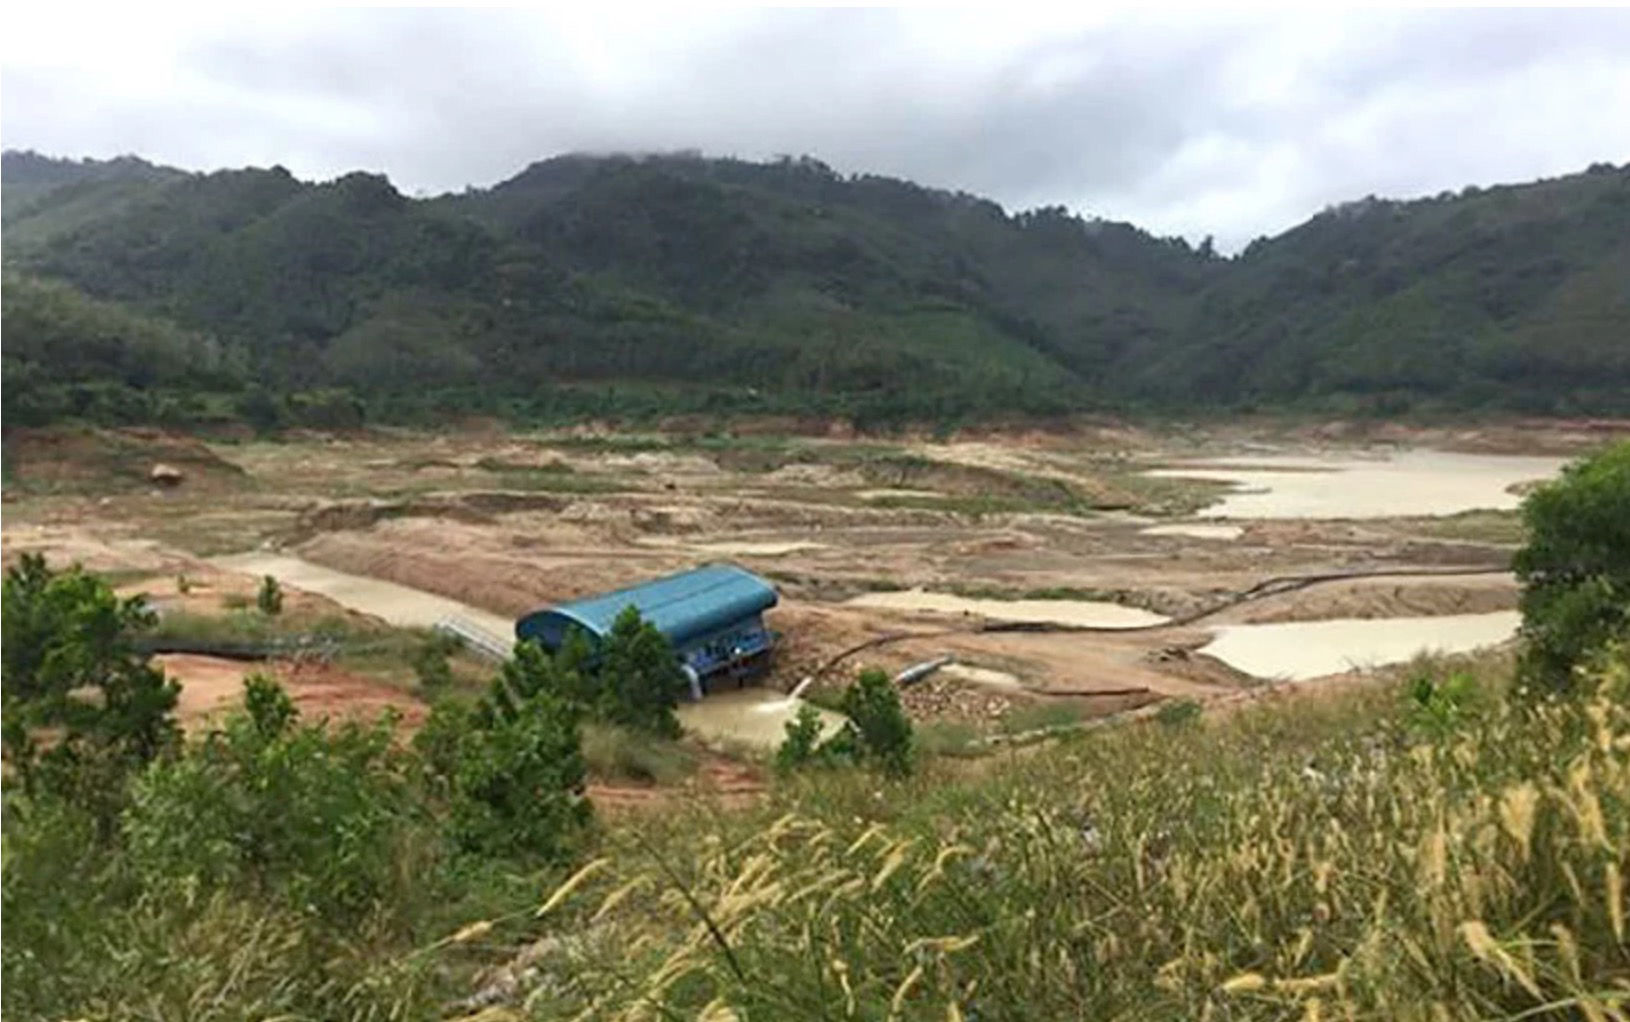 Drought disasters plague the nation | News by Thaiger